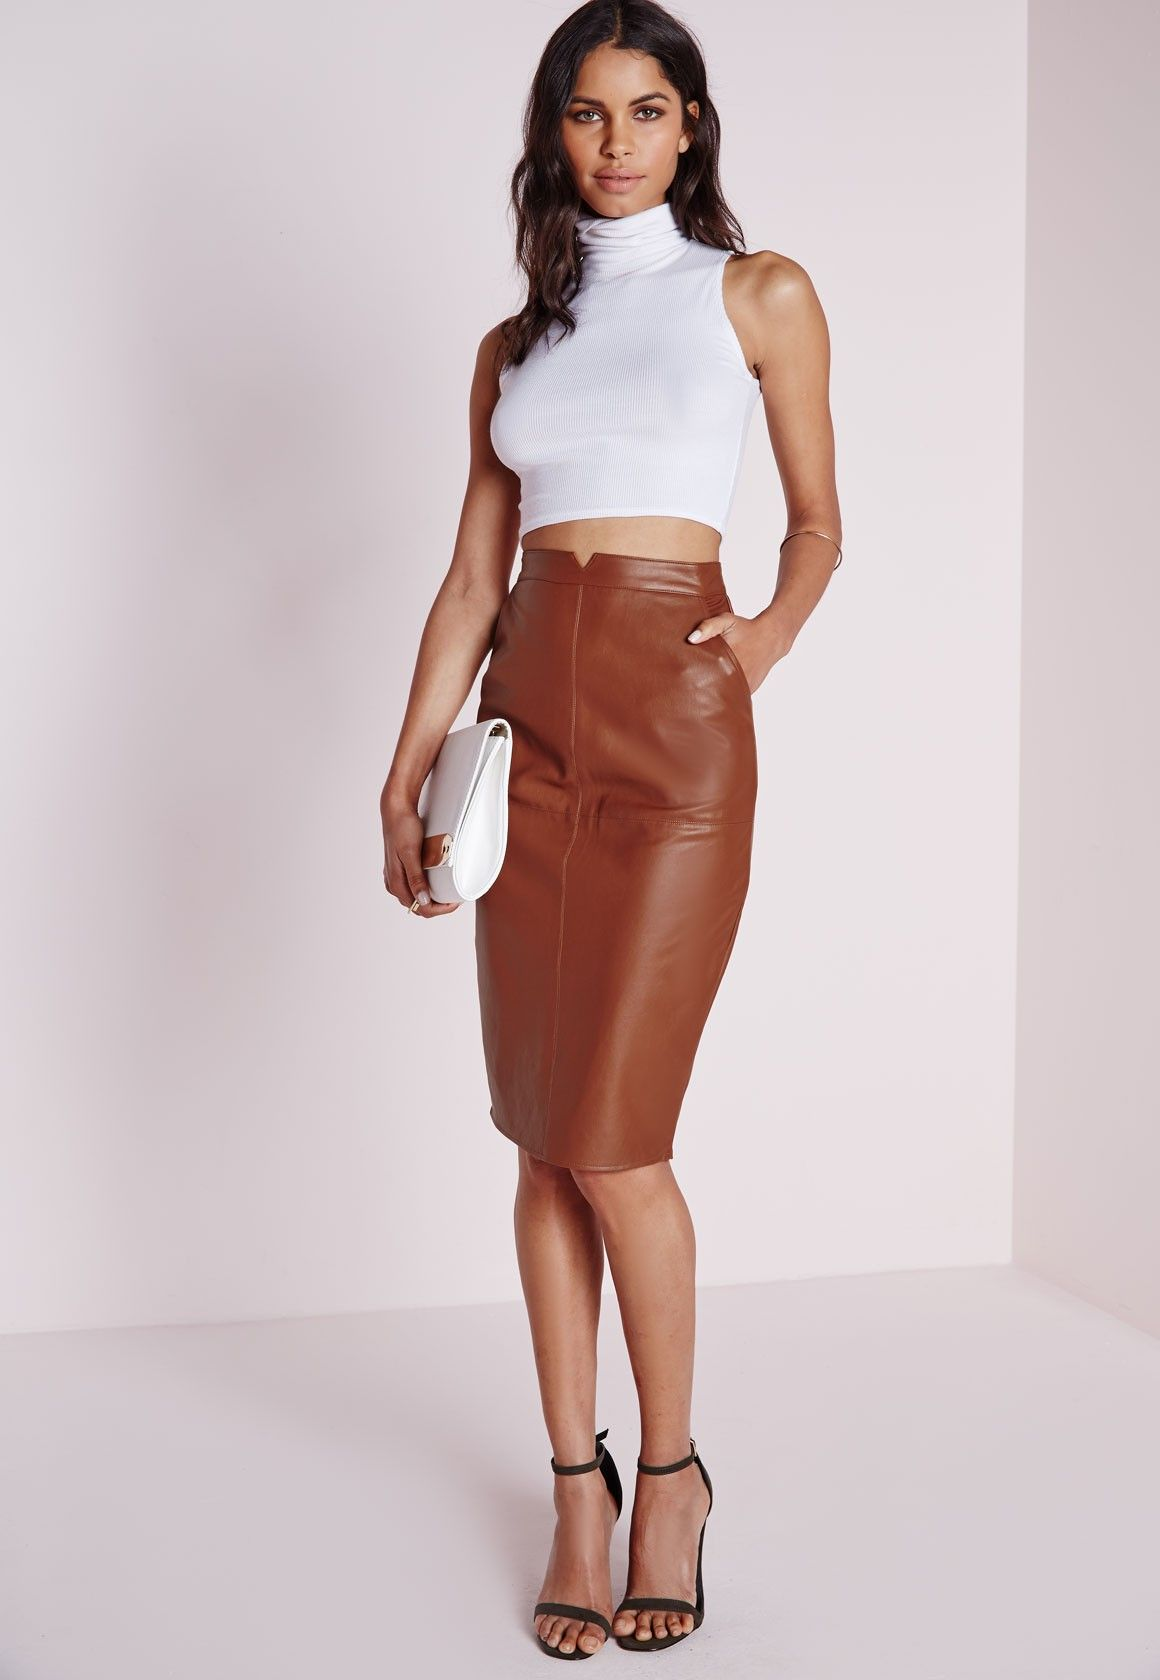 You'll be up in flames in this faux real sexy midi skirt ...